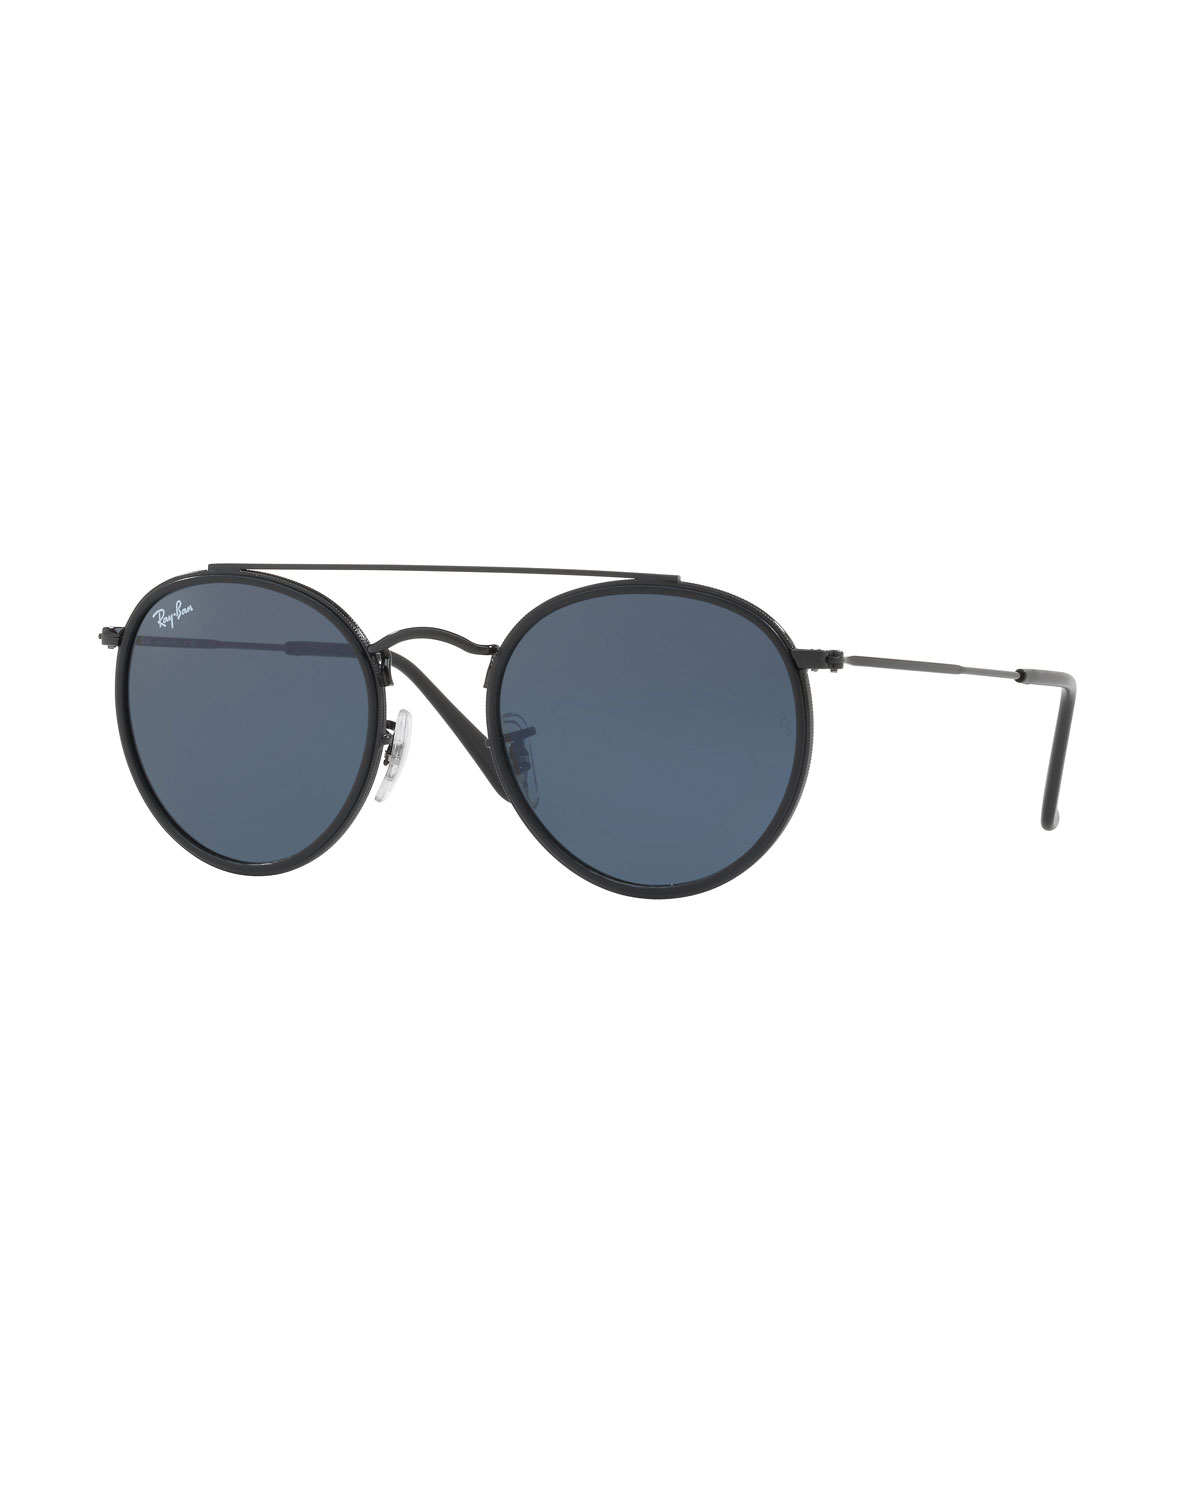 e438750d7e Ray-Ban Monochromatic Round Metal Sunglasses